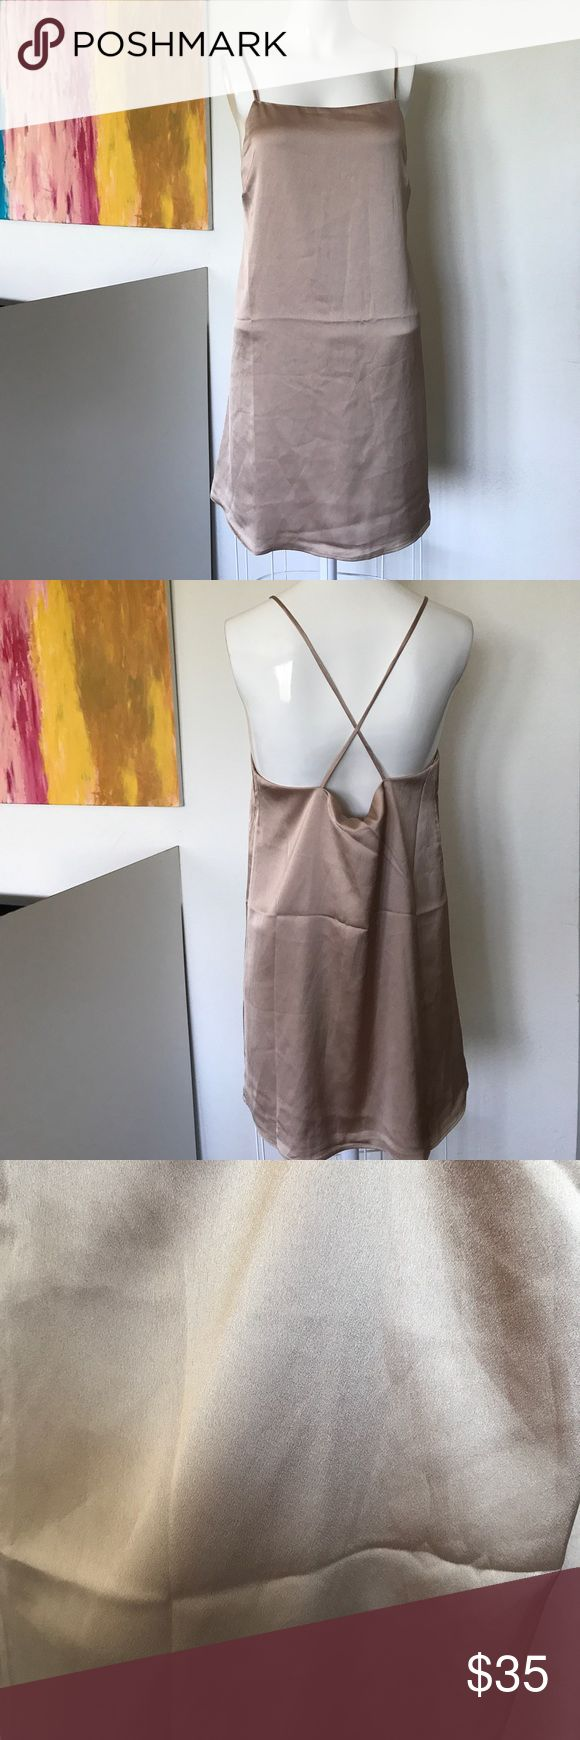 Cotton Candy LA Satin Nude Mini Dress Brand New from Nasty Gal or associated brand. New without tags. All items are authentic. Please refer to Nastygal.com for sizing or reviews if this listing doesn't give you the exact measurement your looking for. I'll be happy to answer any questions.  No padding  No Trade 📍 Nasty Gal Dresses Mini